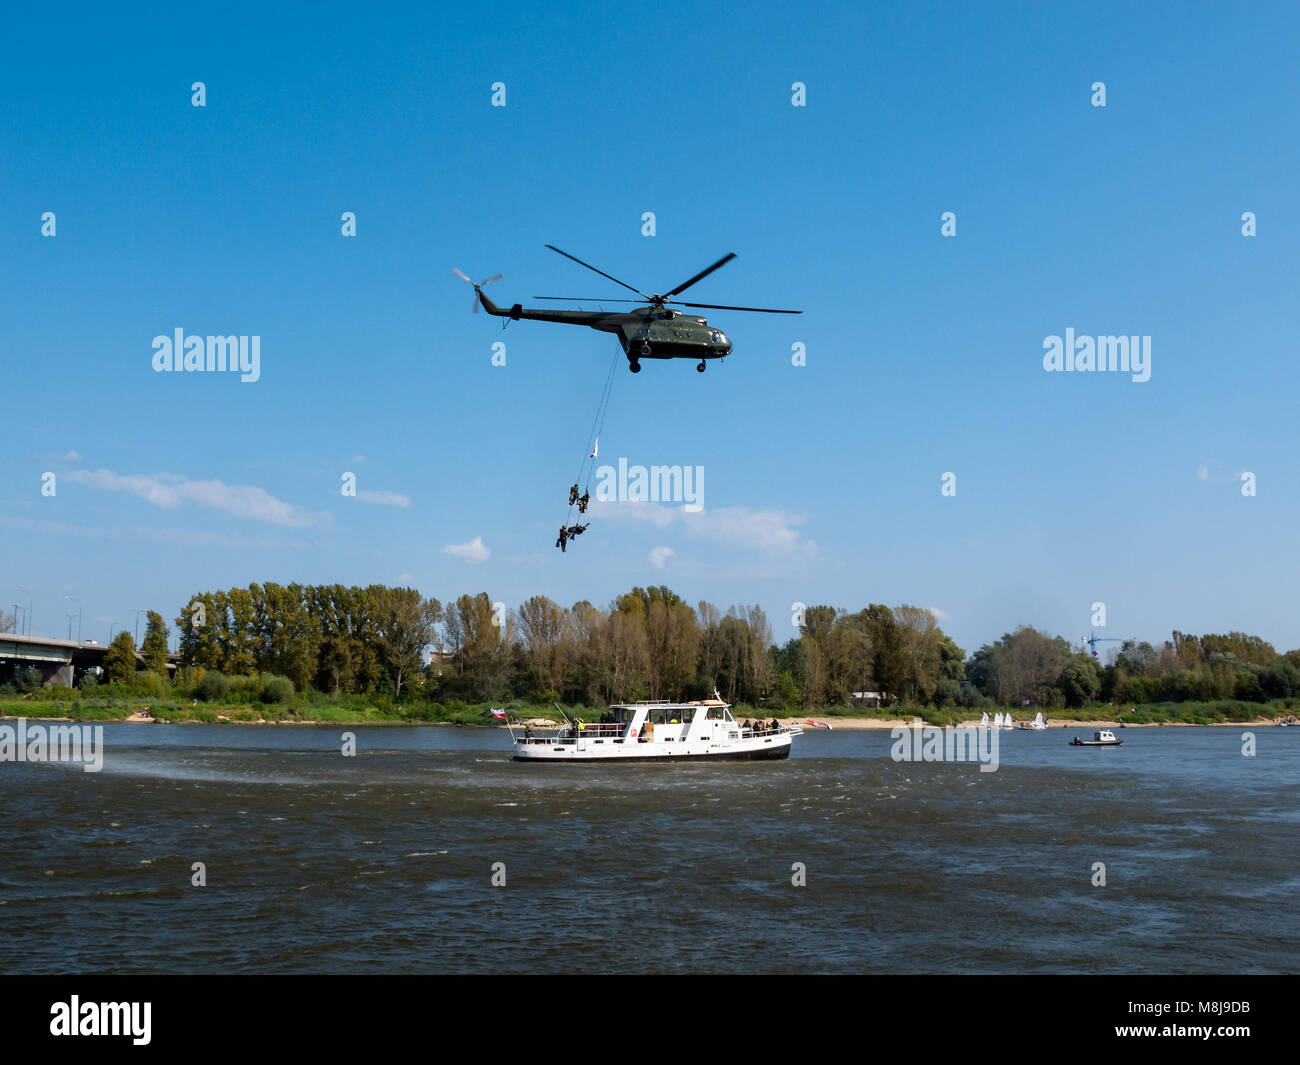 WARSAW, POLAND - SEPTEMBER 13, 2014: Polish GROM Special Forces show boarding a boat with terrorists from a helicopter. Stock Photo